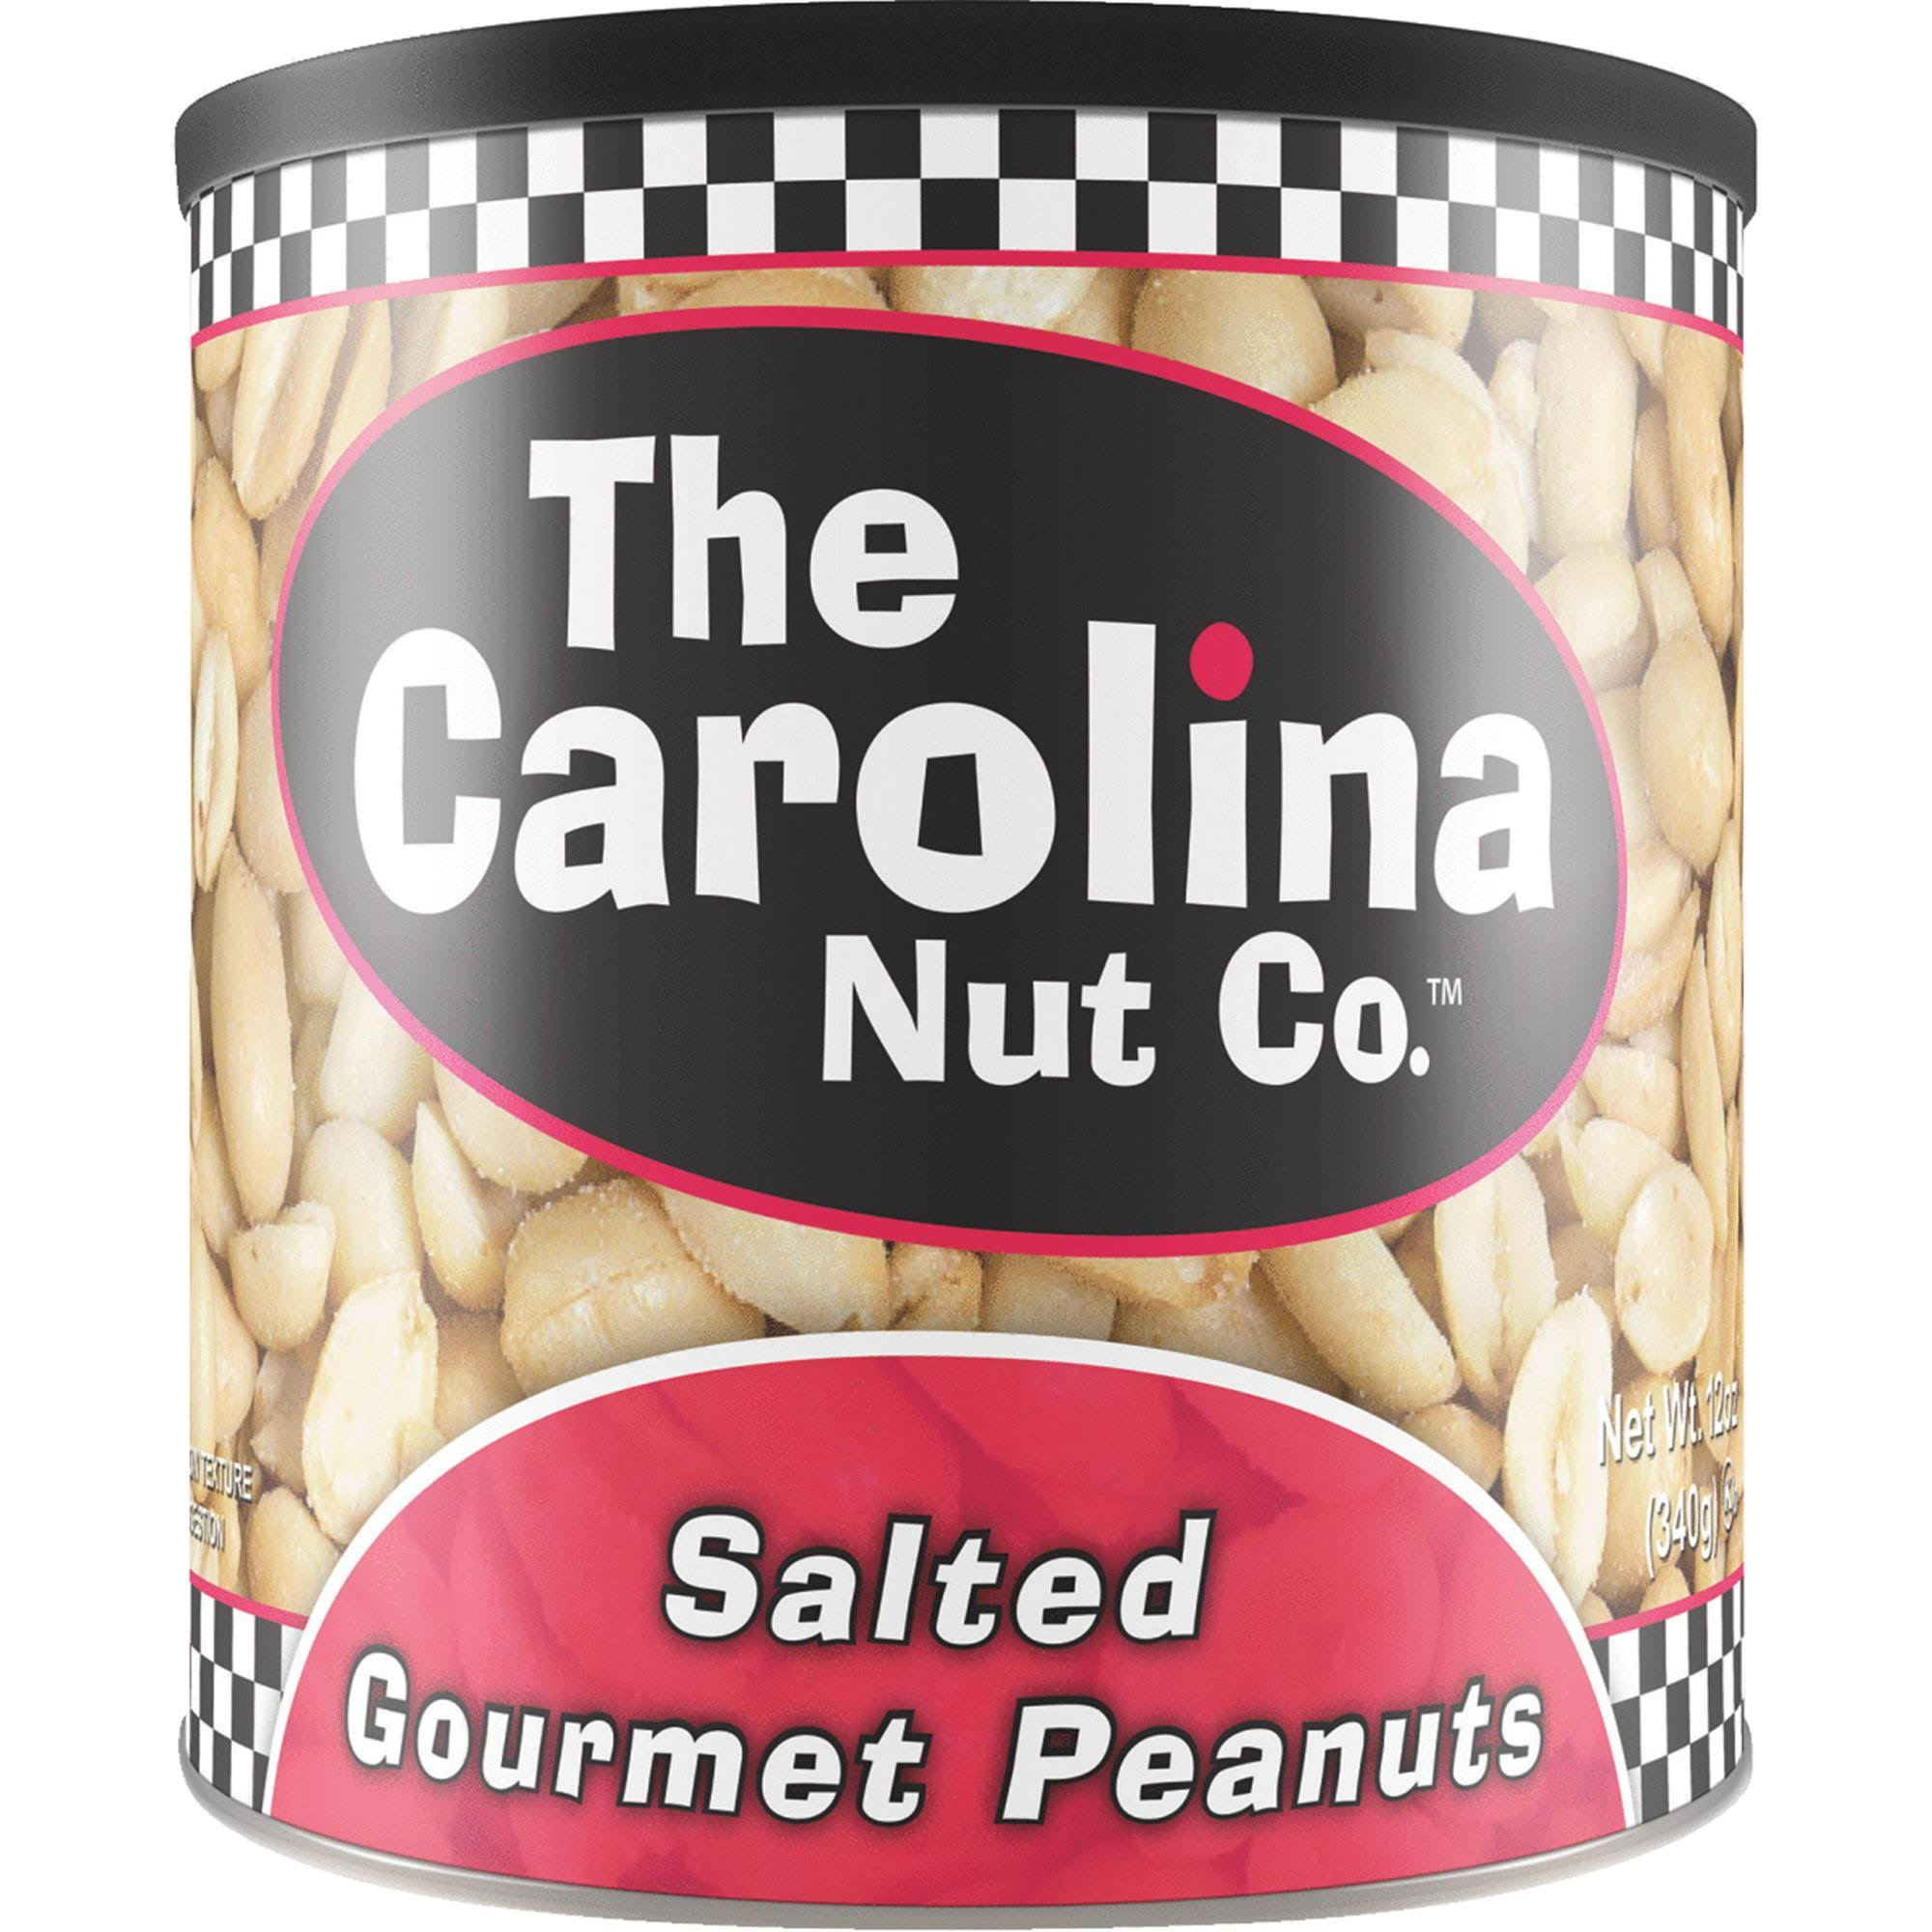 The Carolina Nut Co. Gourmet Peanuts - Salted